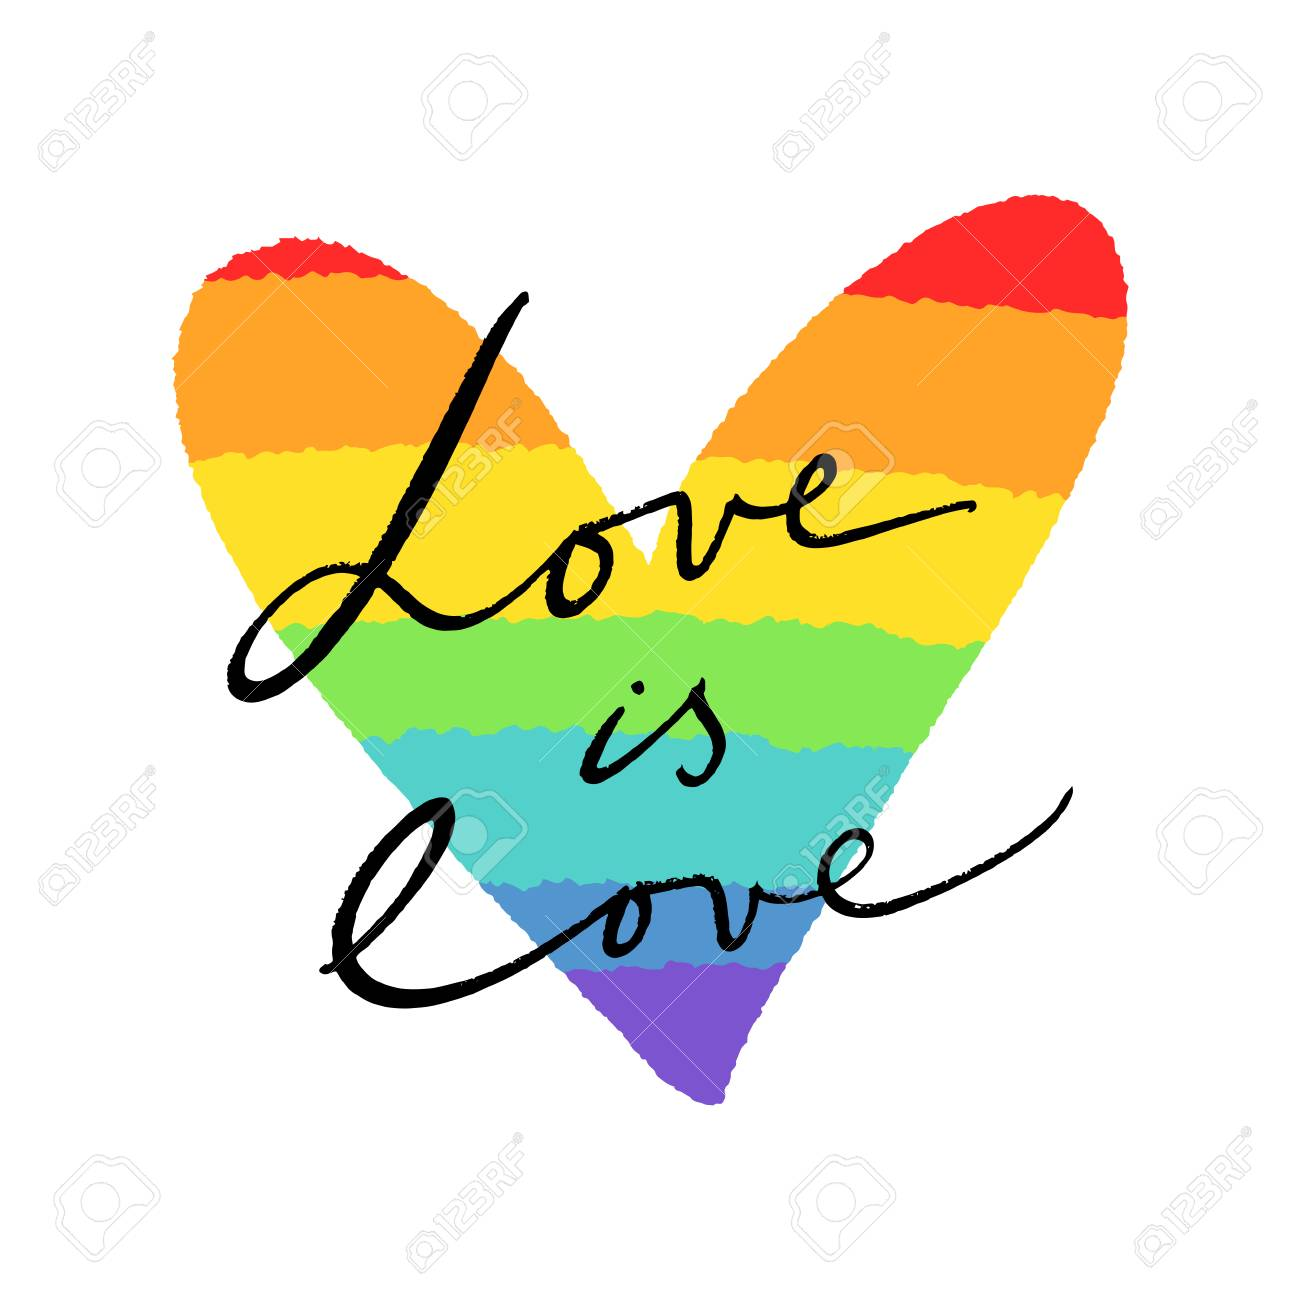 LGBT heart flag and lettering text. Hand drawn colors of the rainbow. Freedom and love concept. Badge or sticker. - 115939369